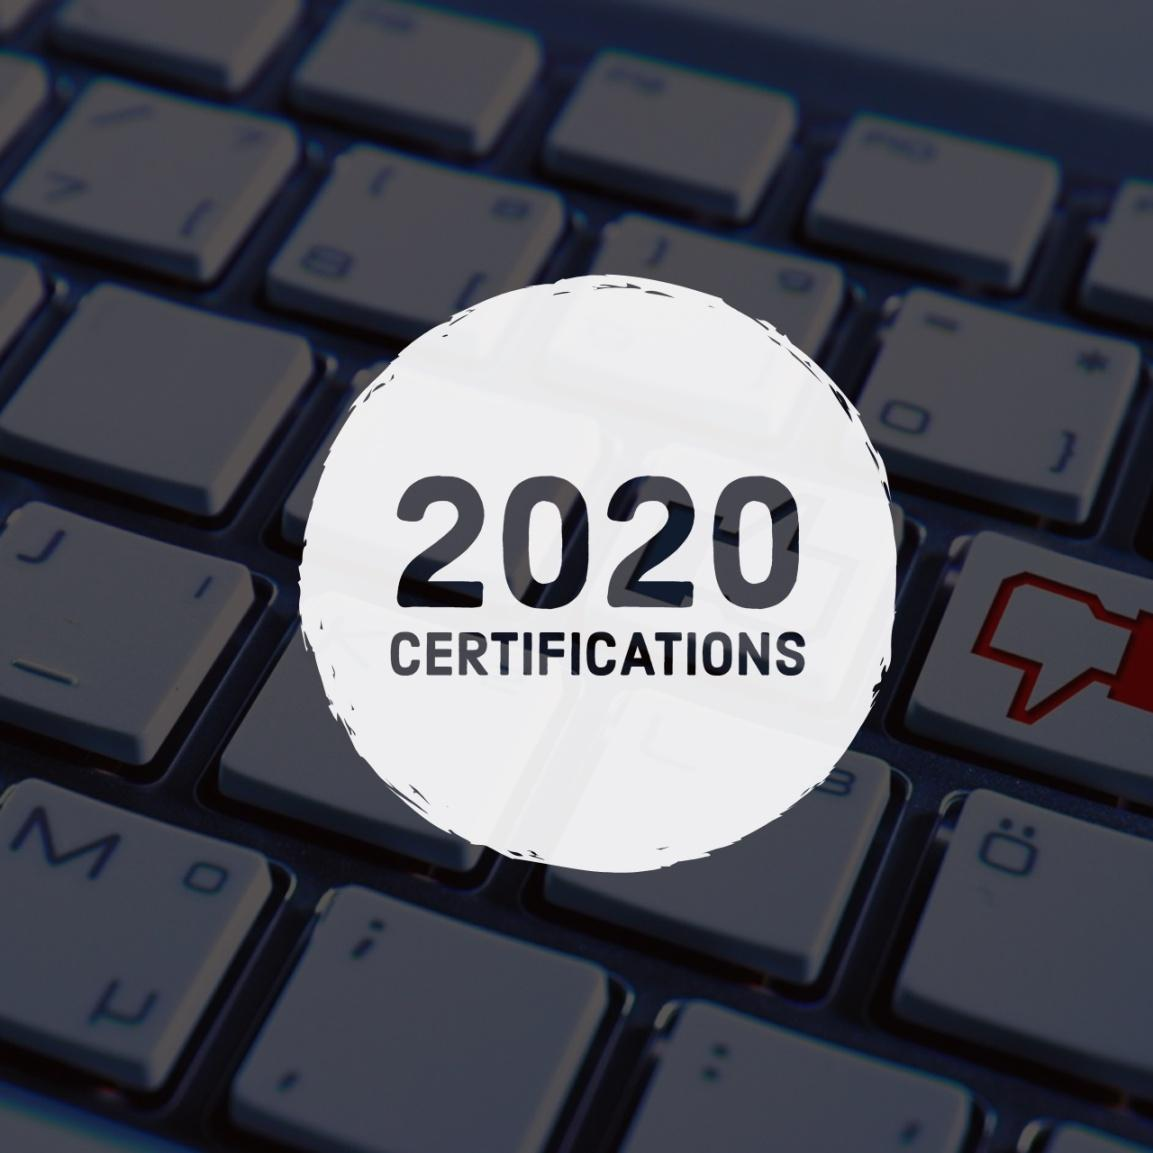 Top Help Desk Certifications for 2020